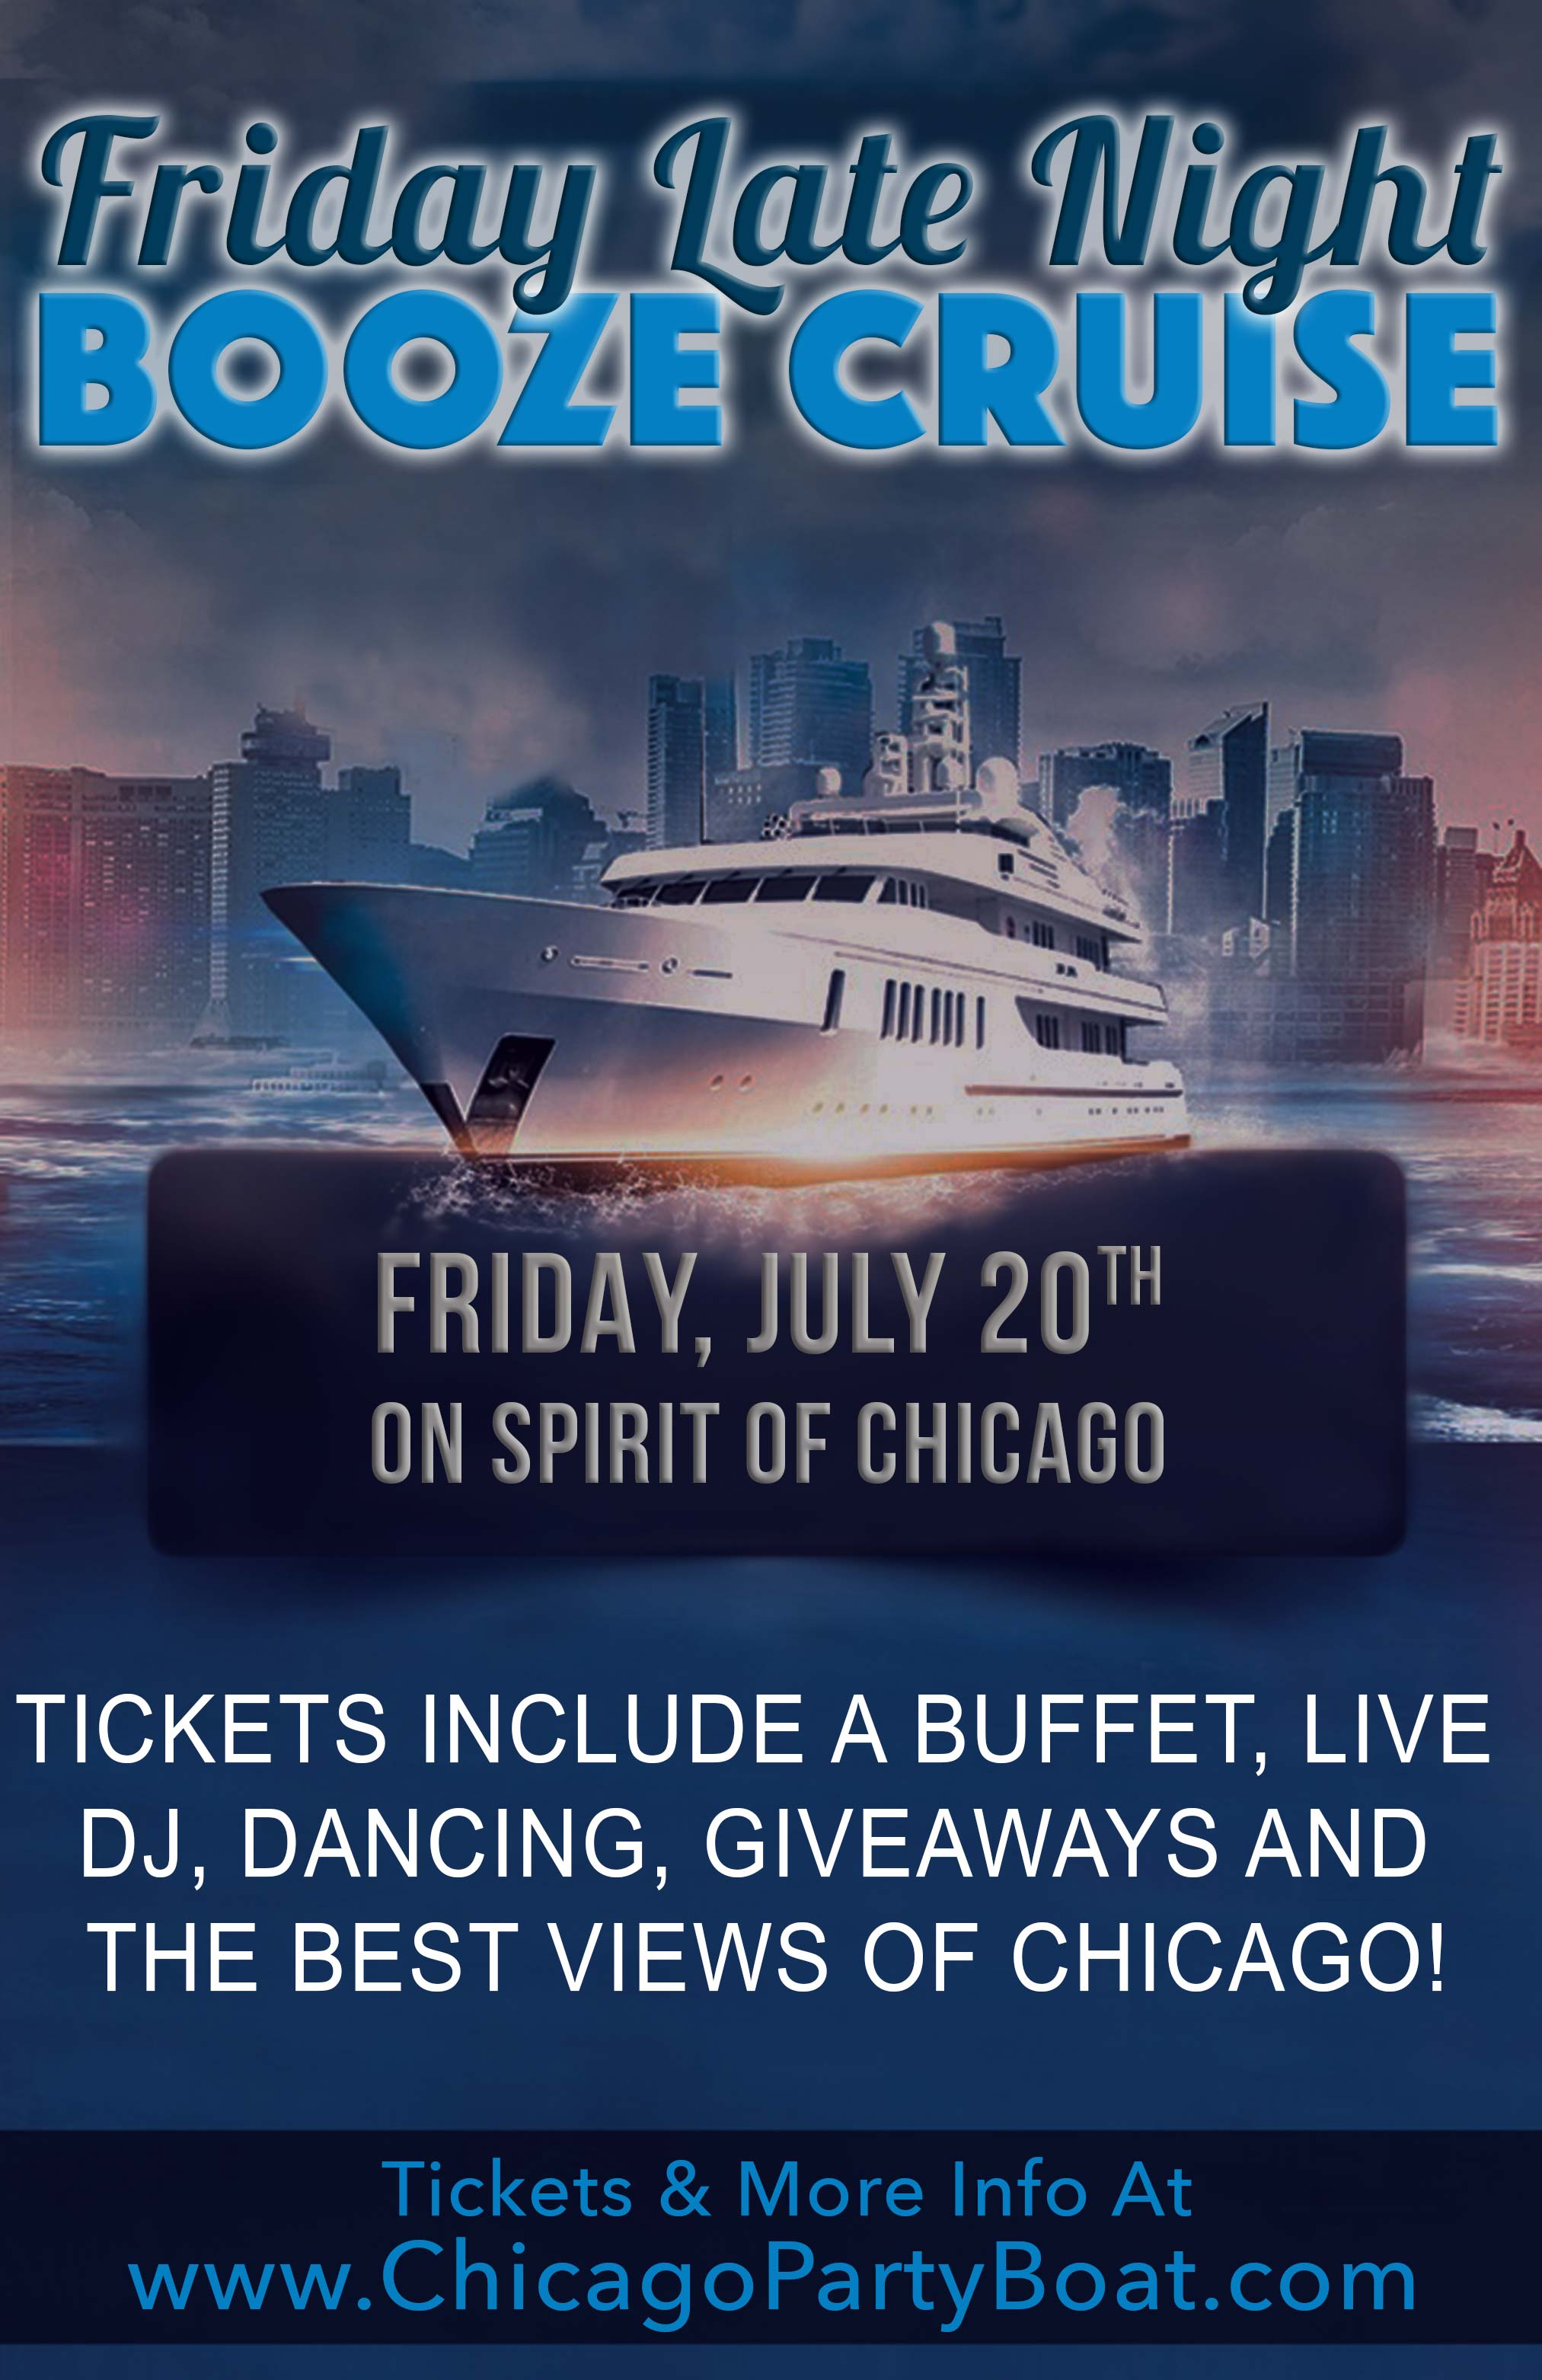 Friday Late Night Booze Cruise Party - Tickets include a Live DJ, Dancing, Giveaways, and the best views of Chicago!